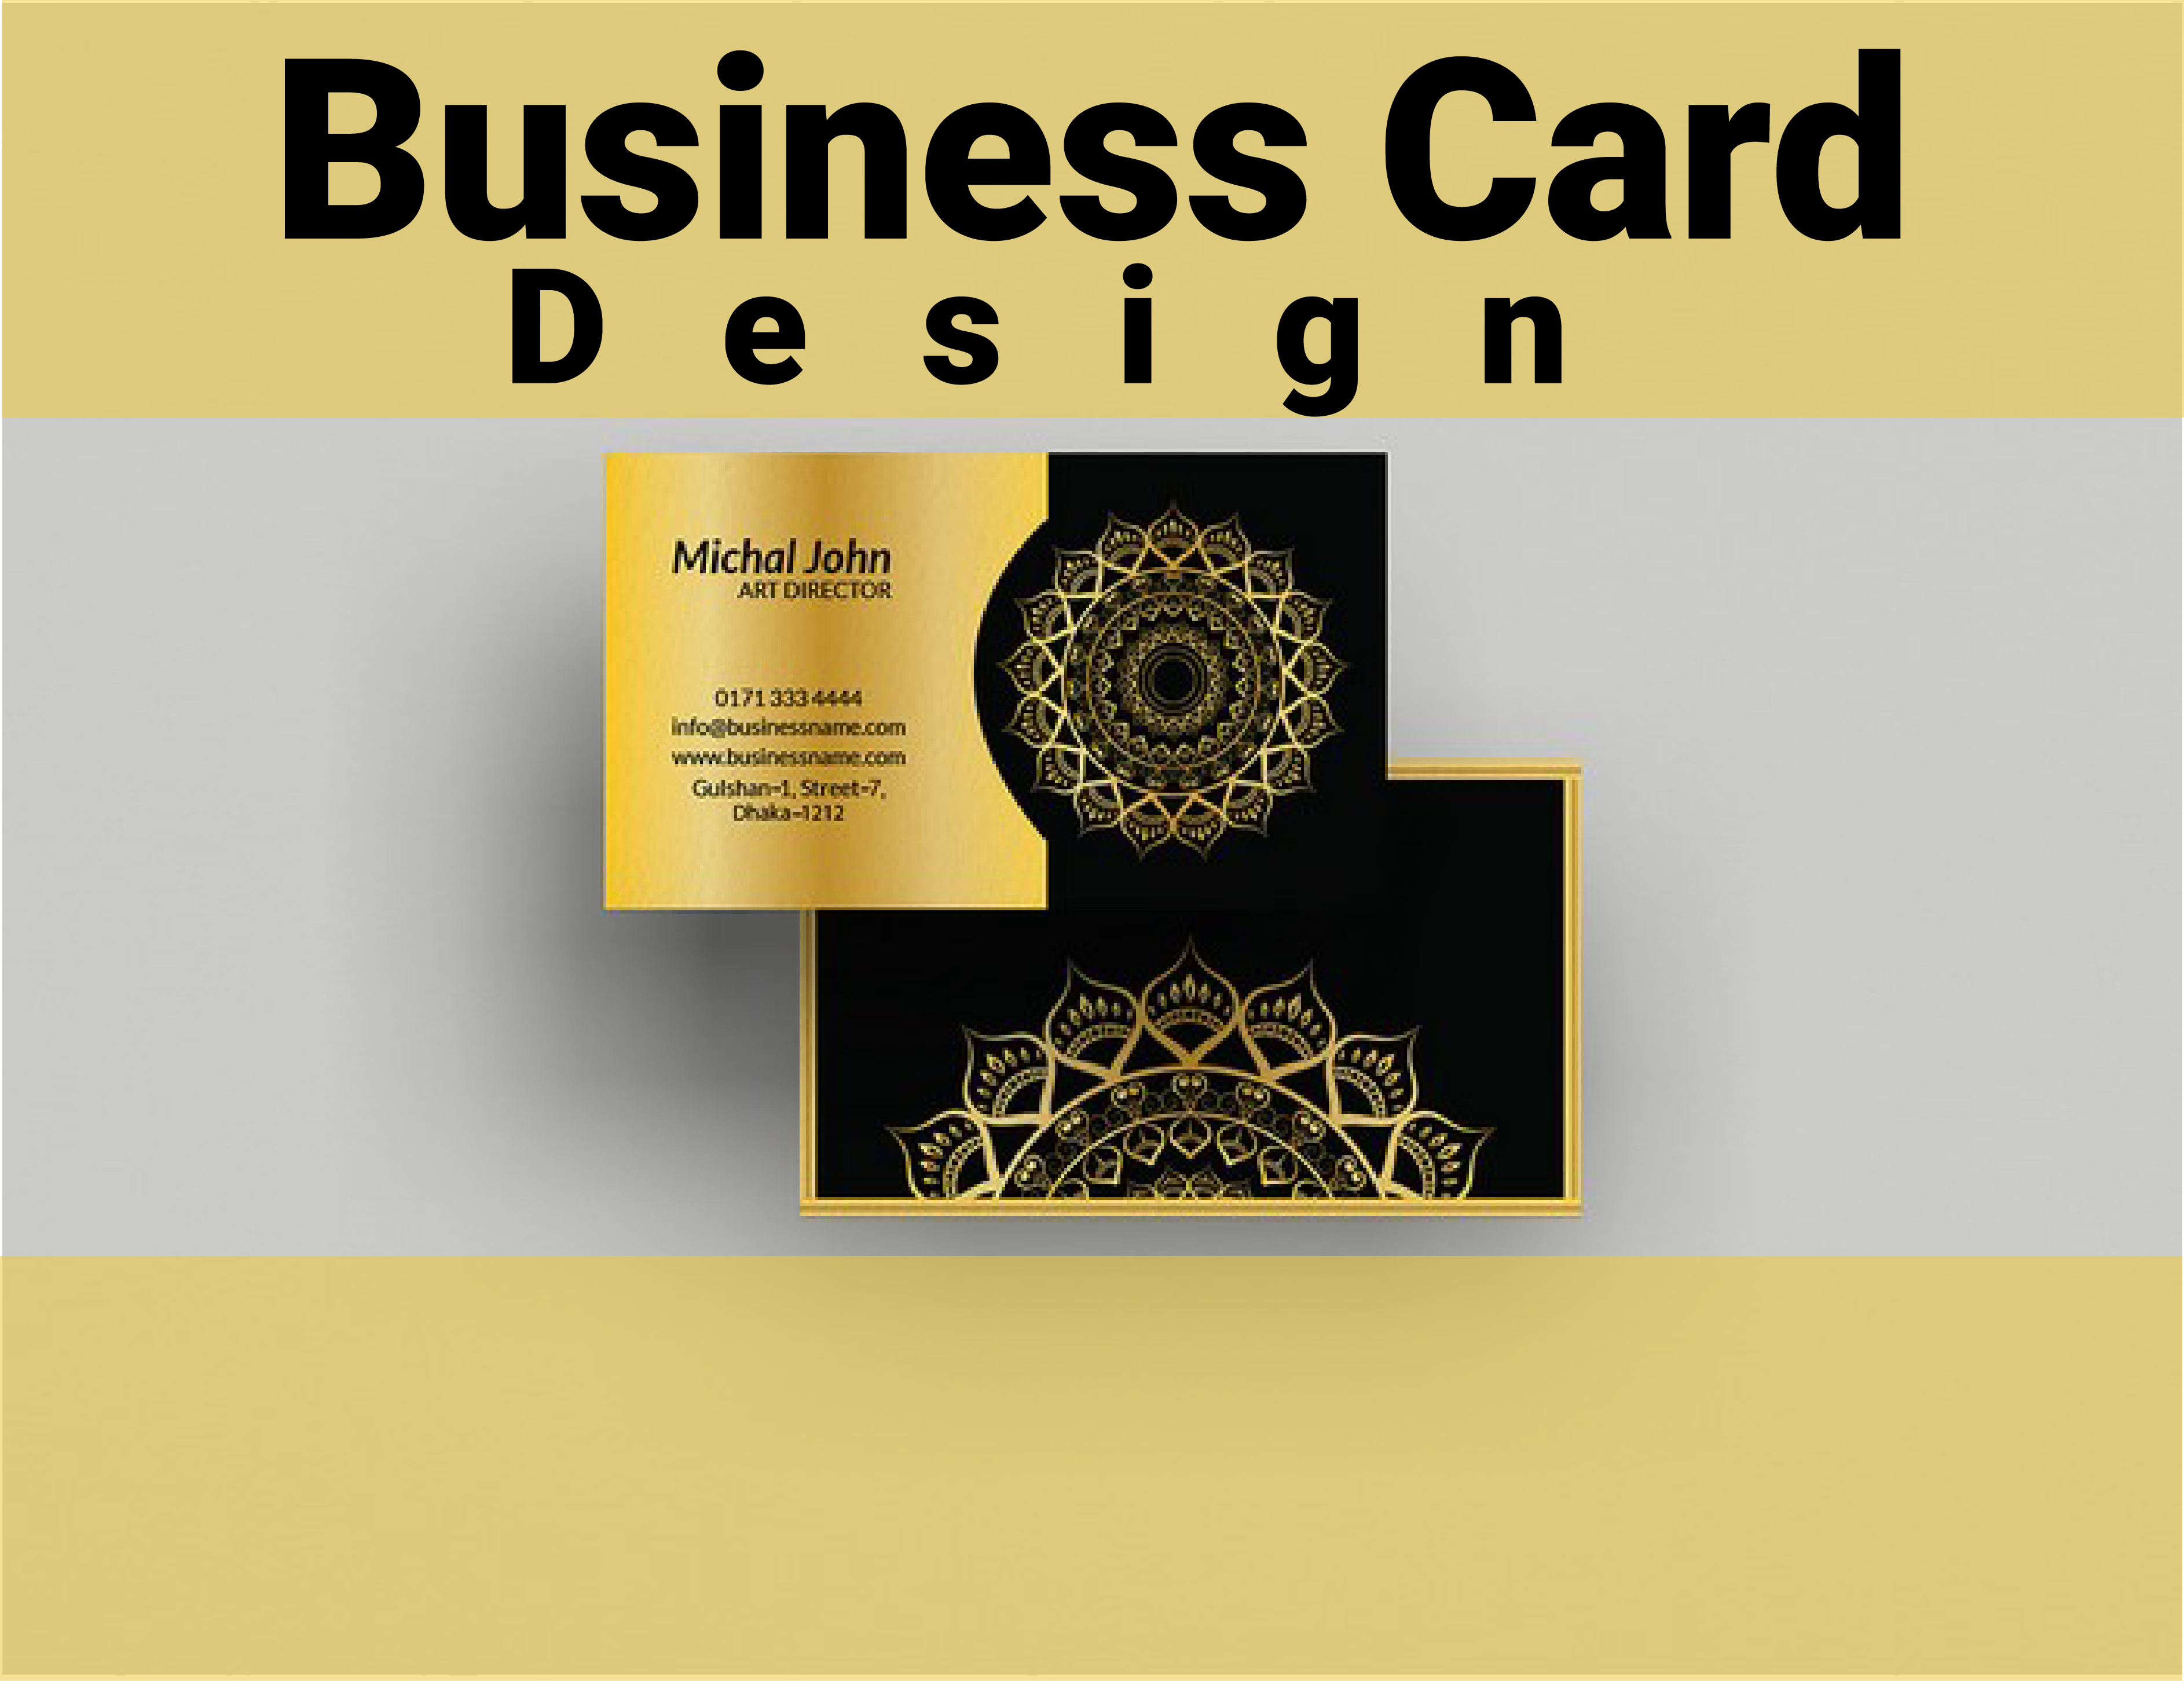 I am expert in professional business card design